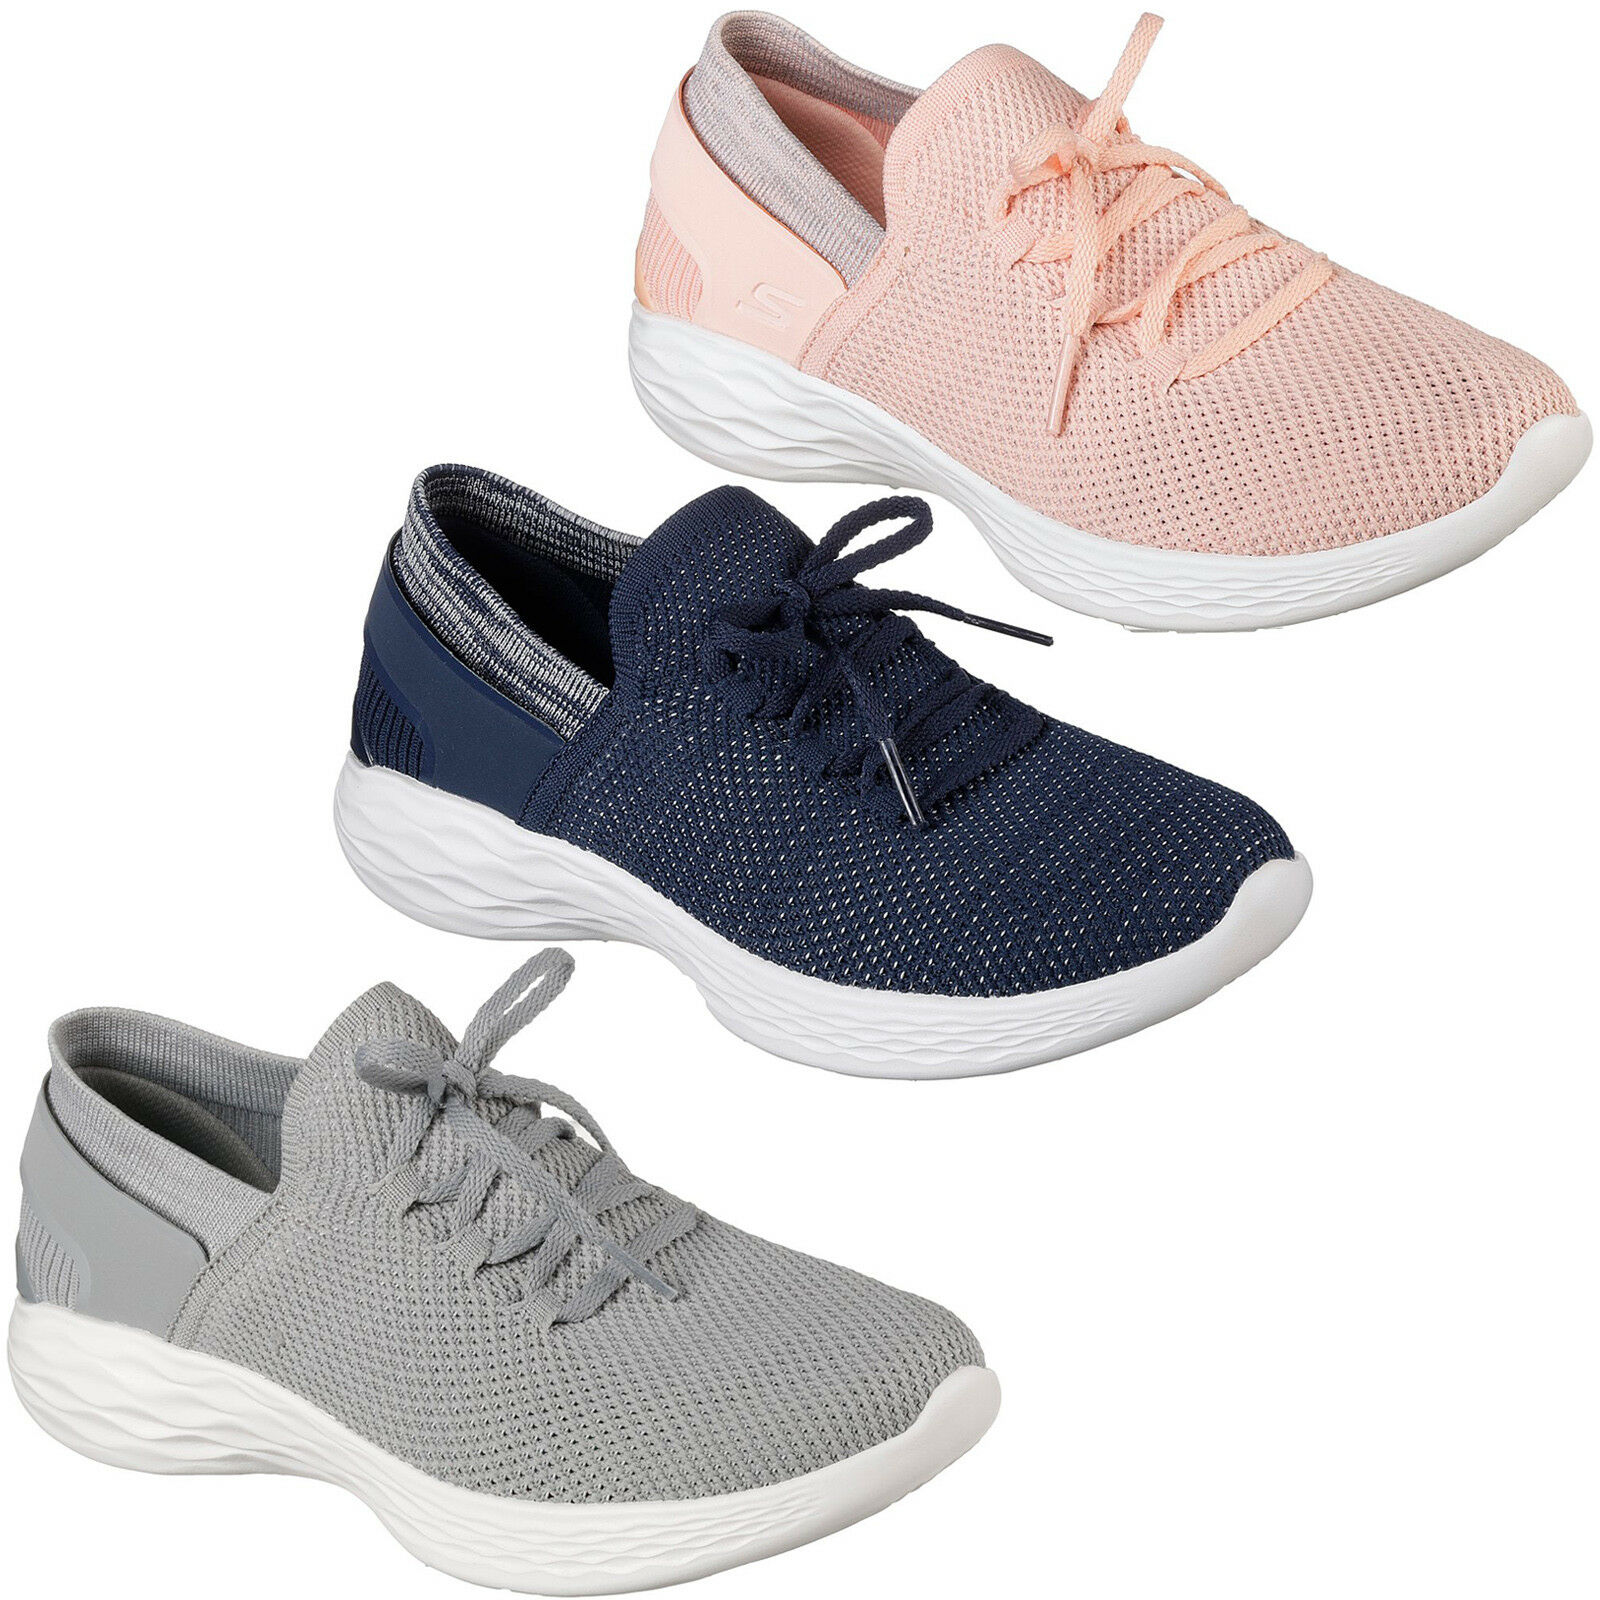 Gran descuento Descuento por tiempo limitado Skechers You - Spirit Trainers Womens Memory Foam Lifestyle Sports Shoes 14960